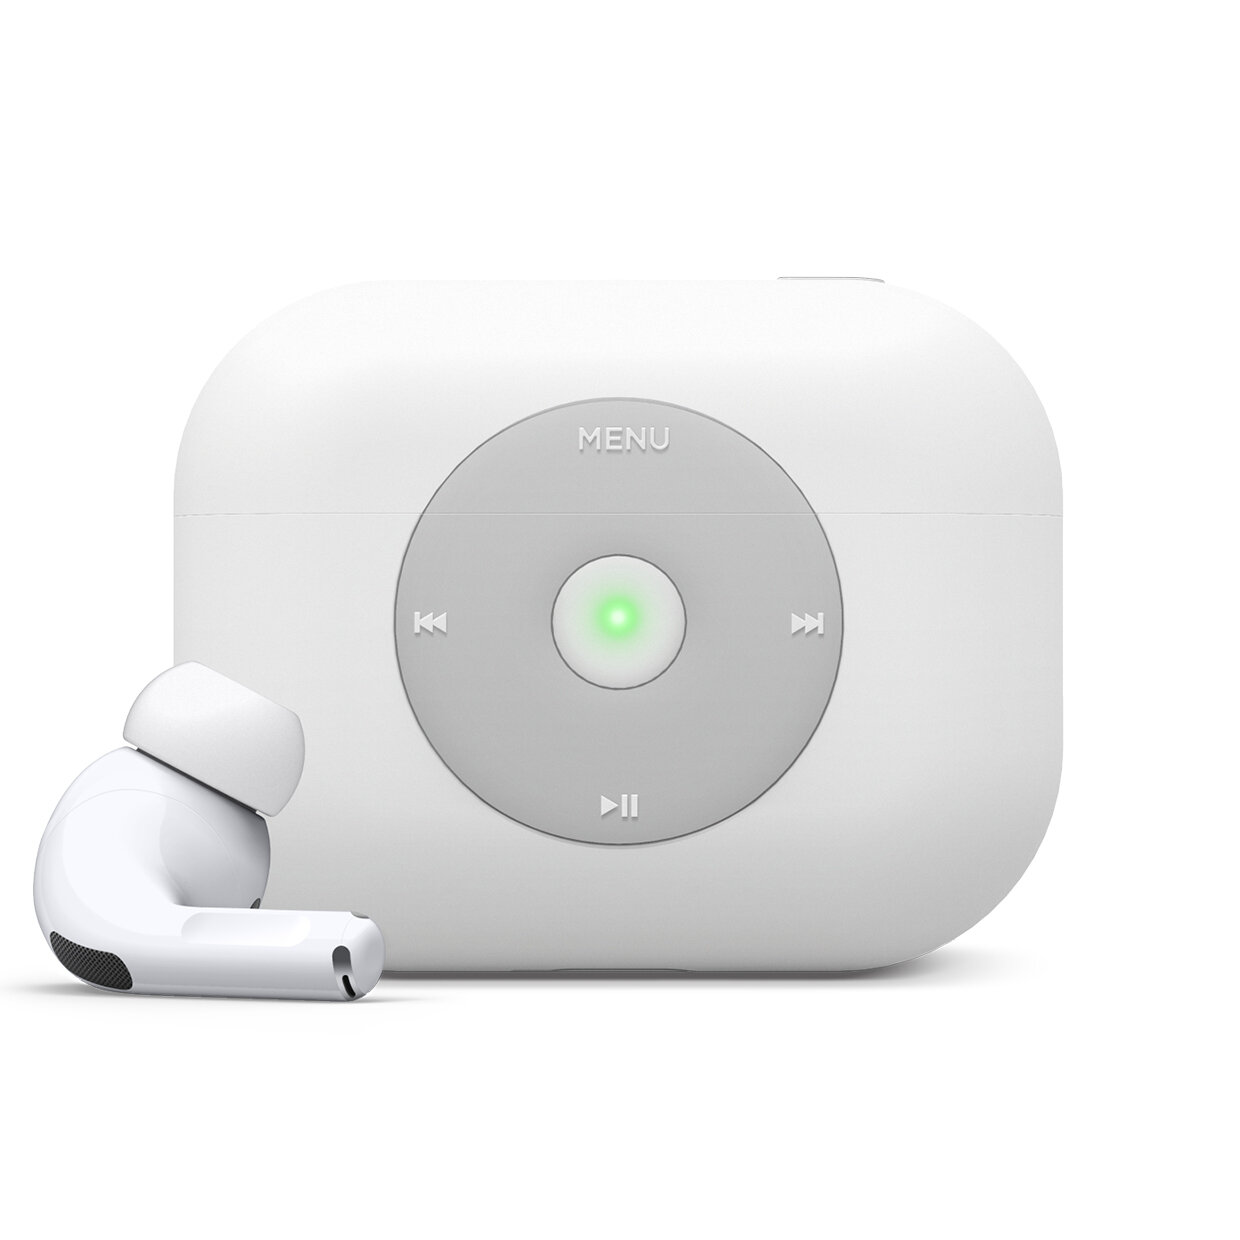 Aw6 Airpods Pro Case Apple Classic Music Player Design 2 Colors